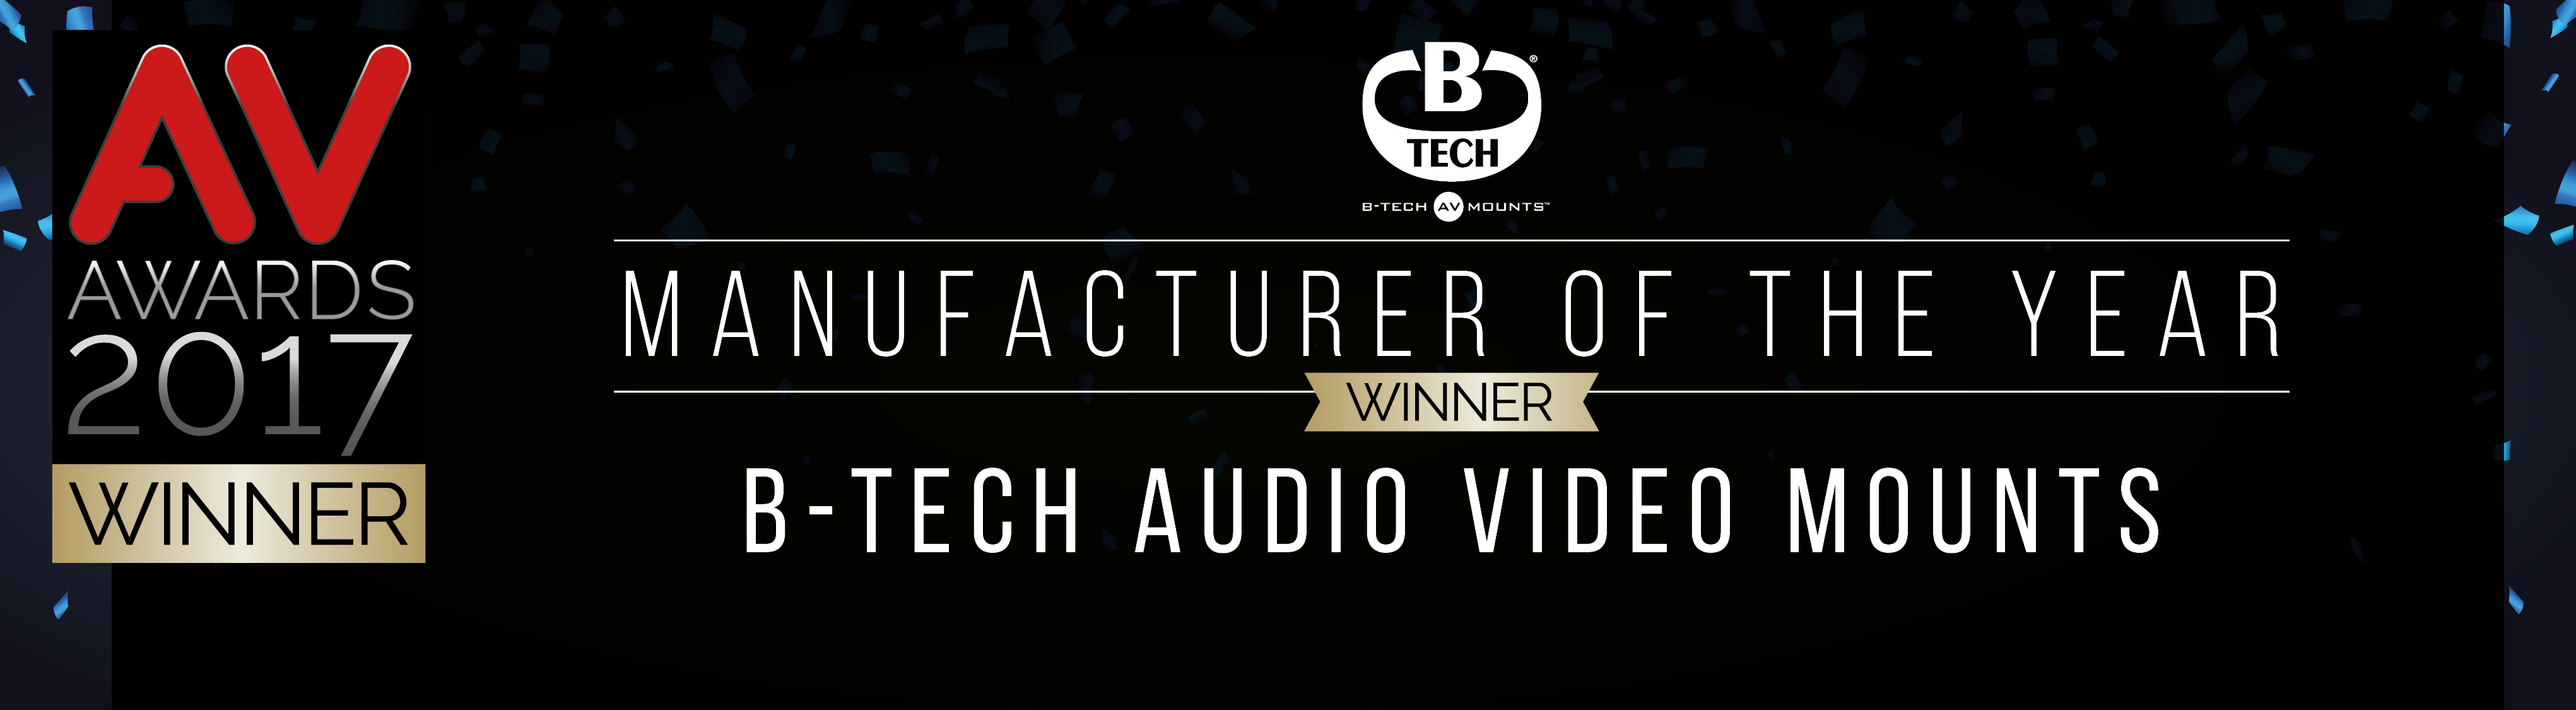 B-Tech win Manufacturer of the Year